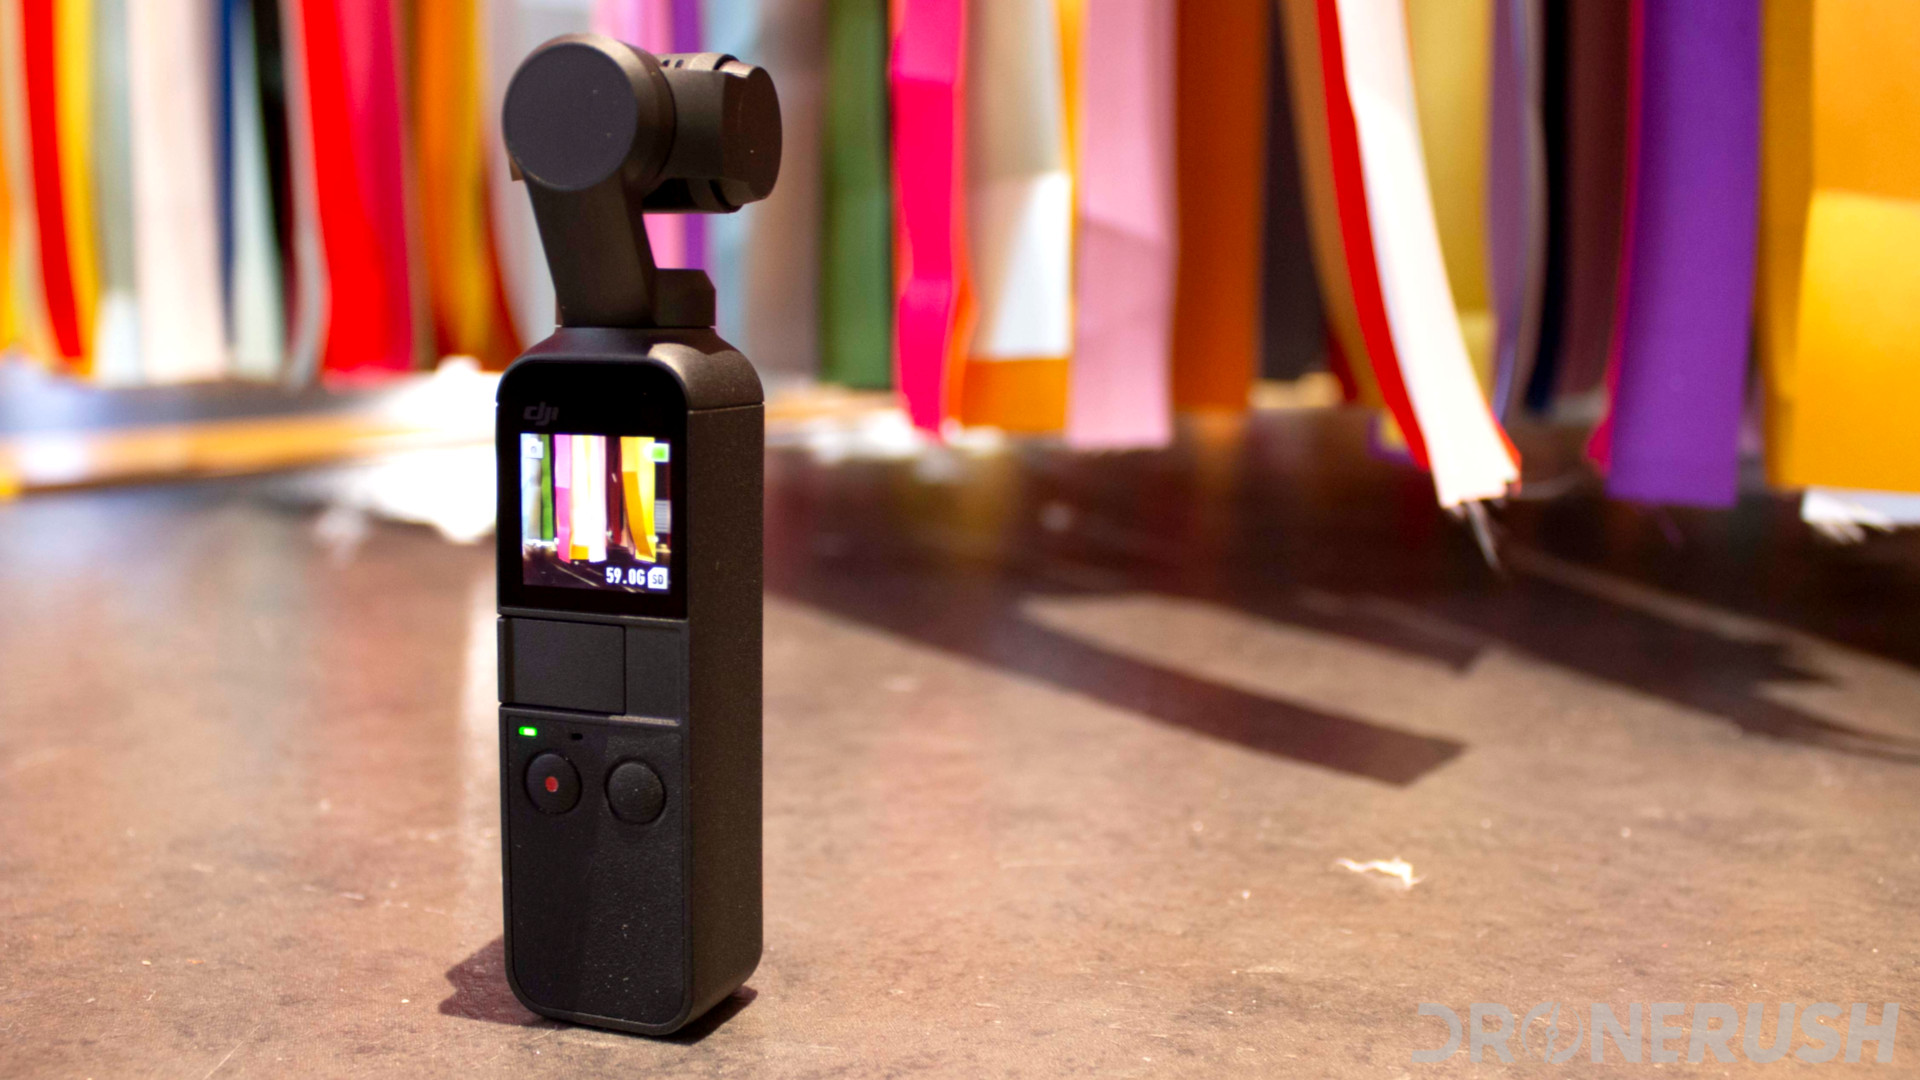 DJI Osmo Pocket colors